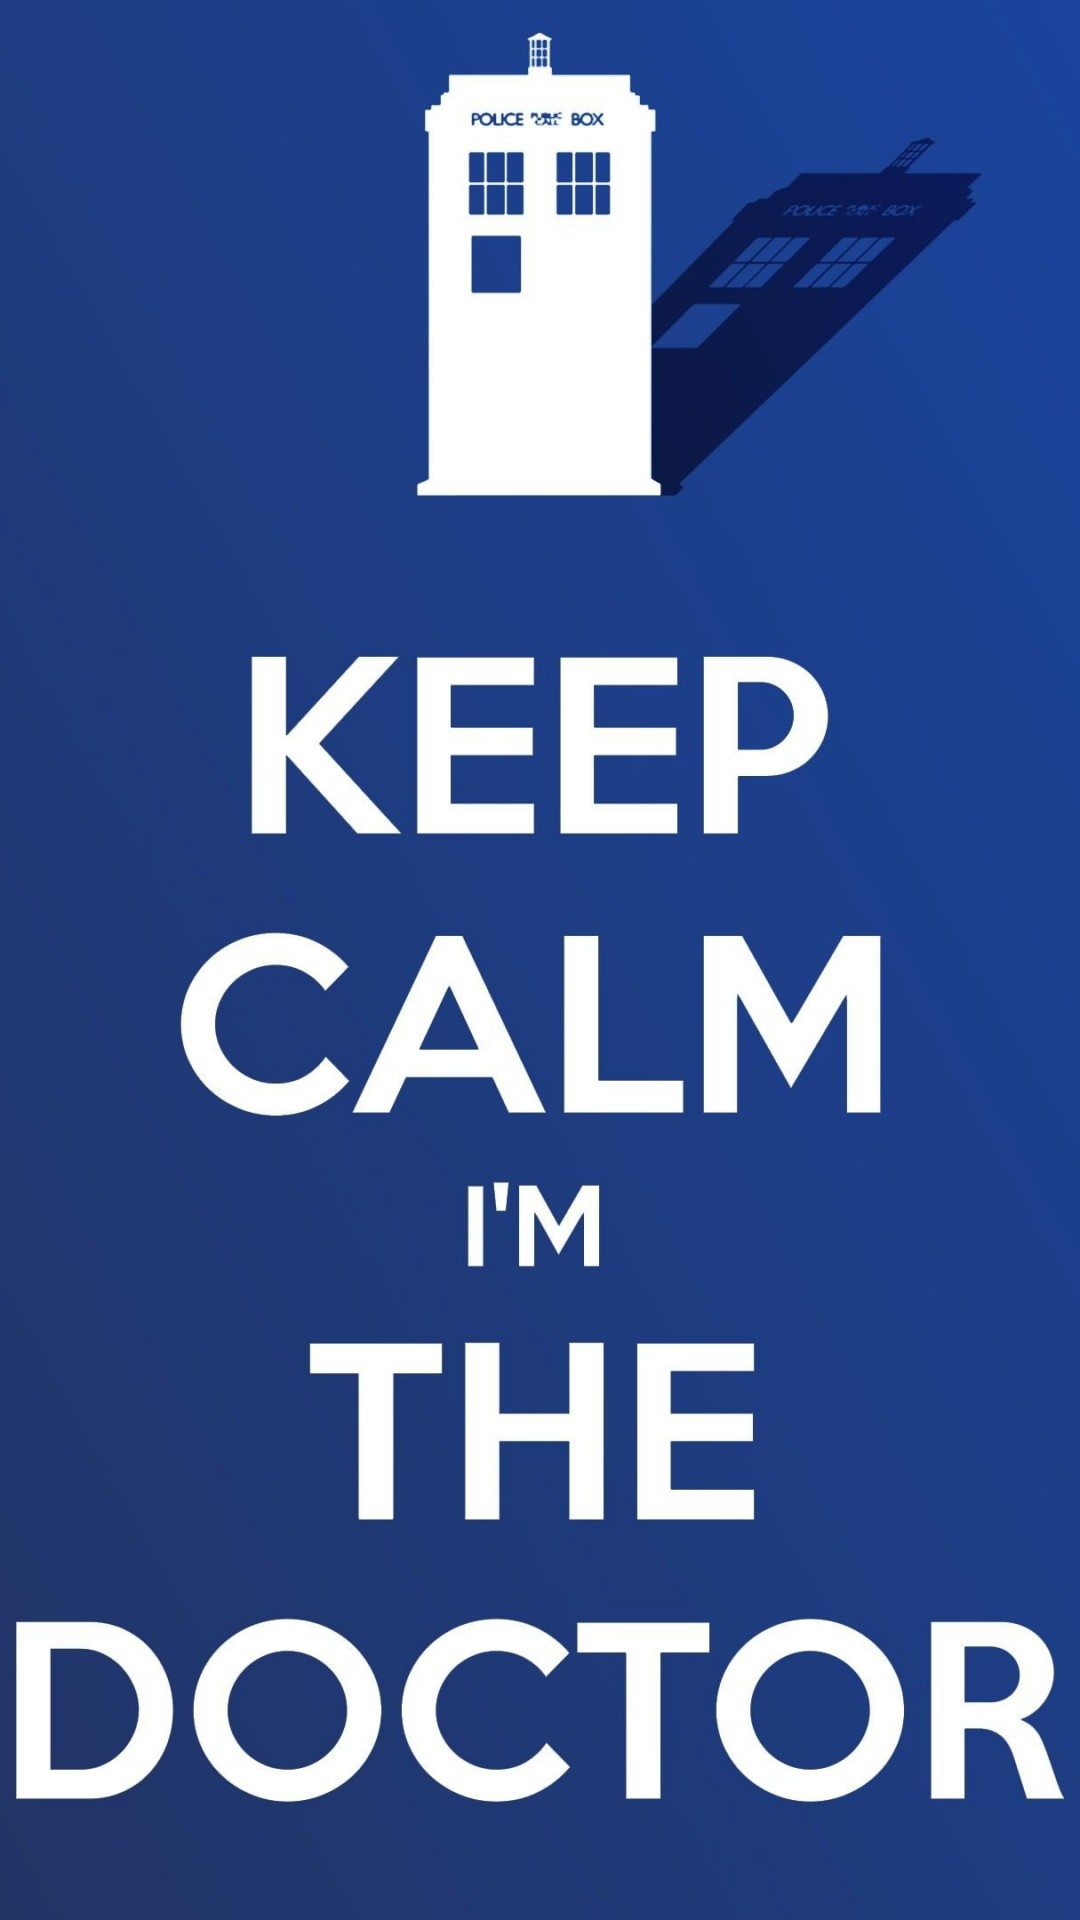 Keep Calm Im The Doctor Wallpaper for Motorola Moto X